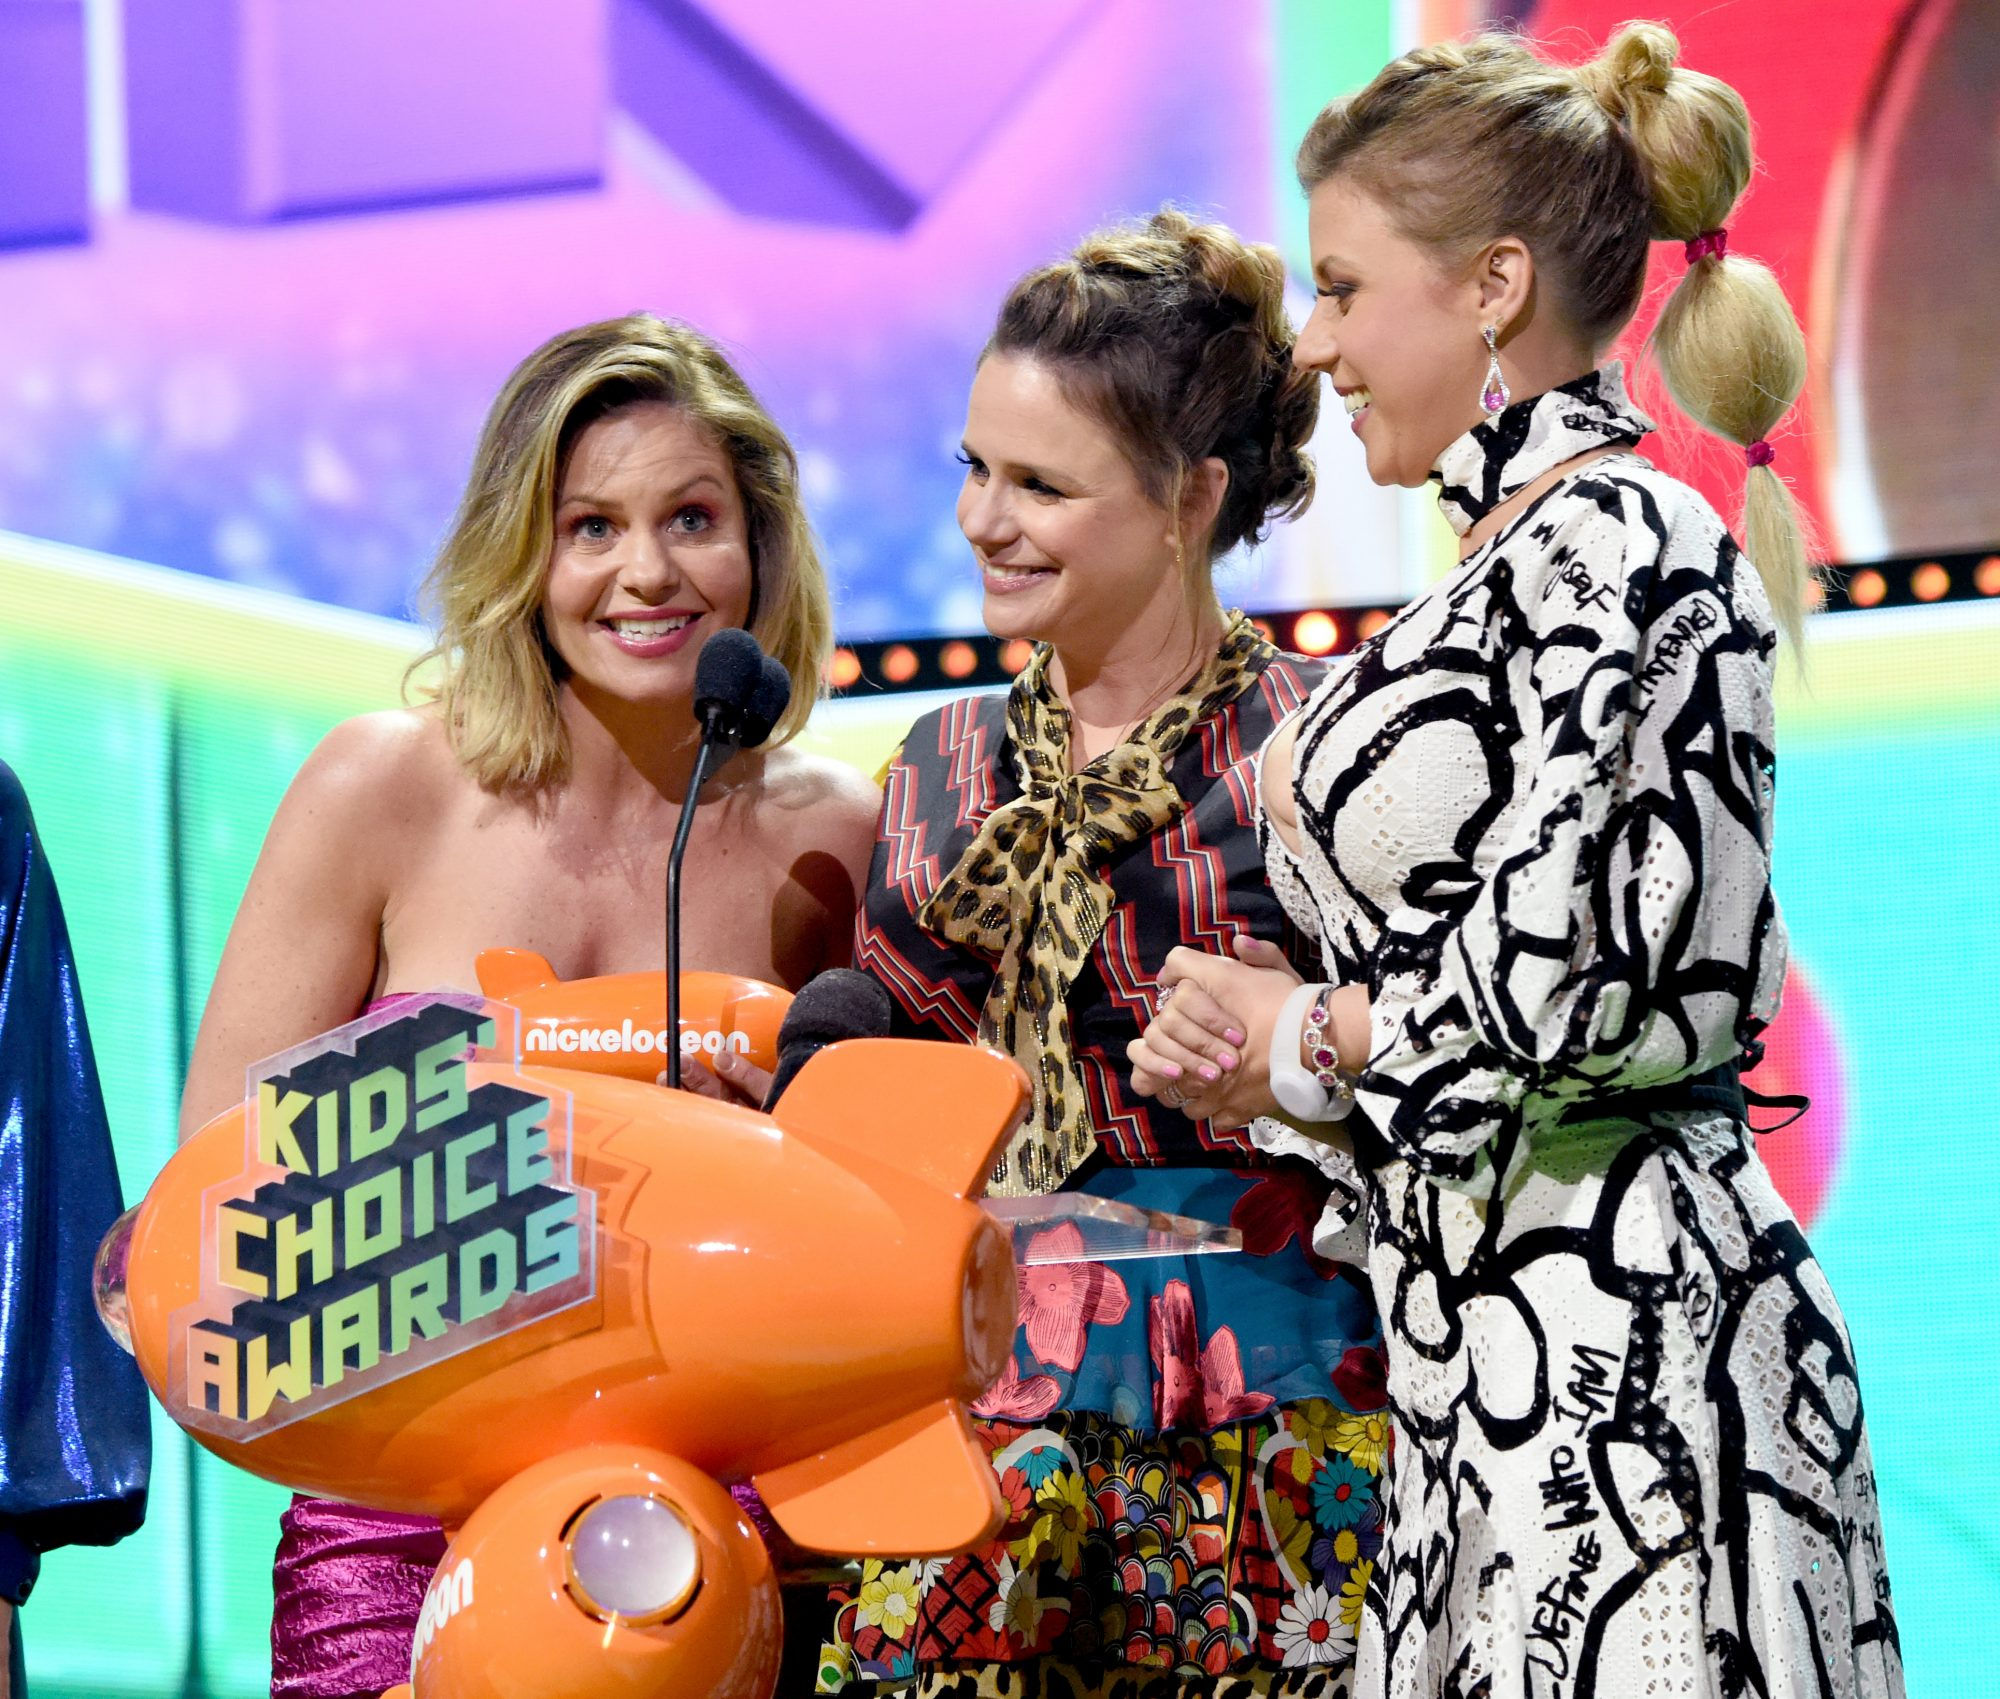 Fuller House Cast Backs Lori Loughlin at Kids' Choice Awards Amid College Admissions Scandal